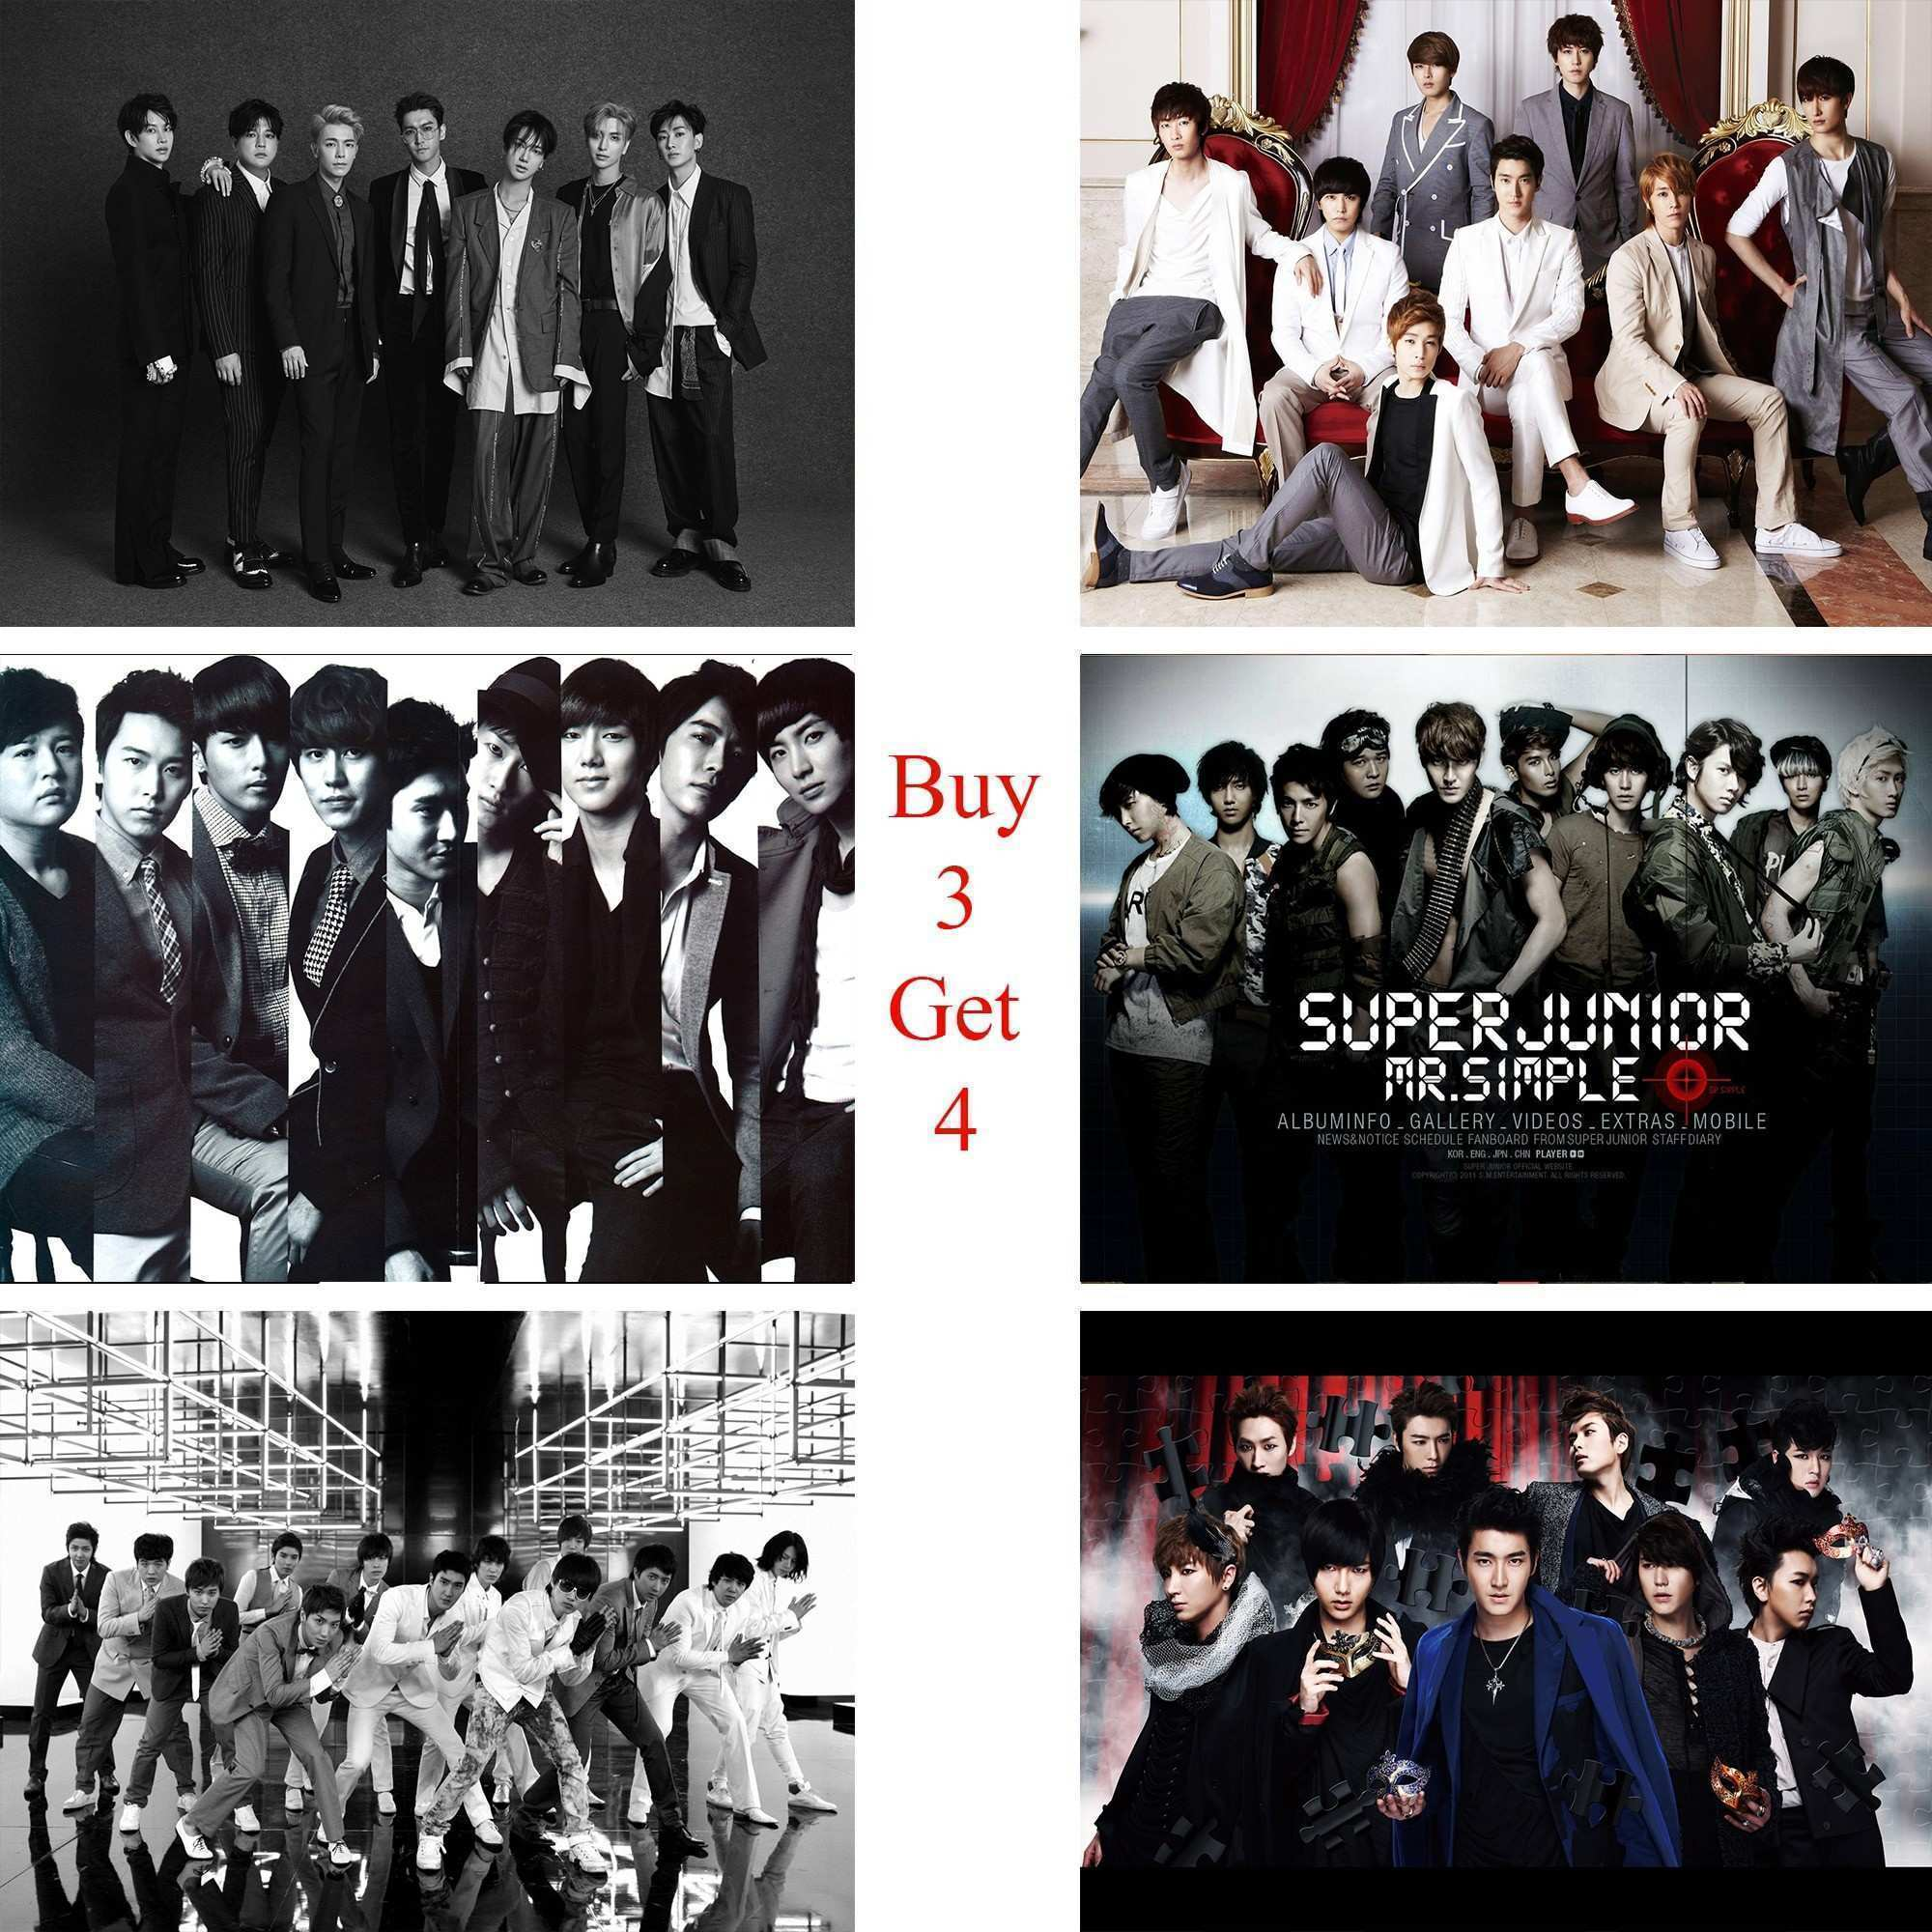 Super Junior Posters K POP Music Wall Stickers White Coated Paper